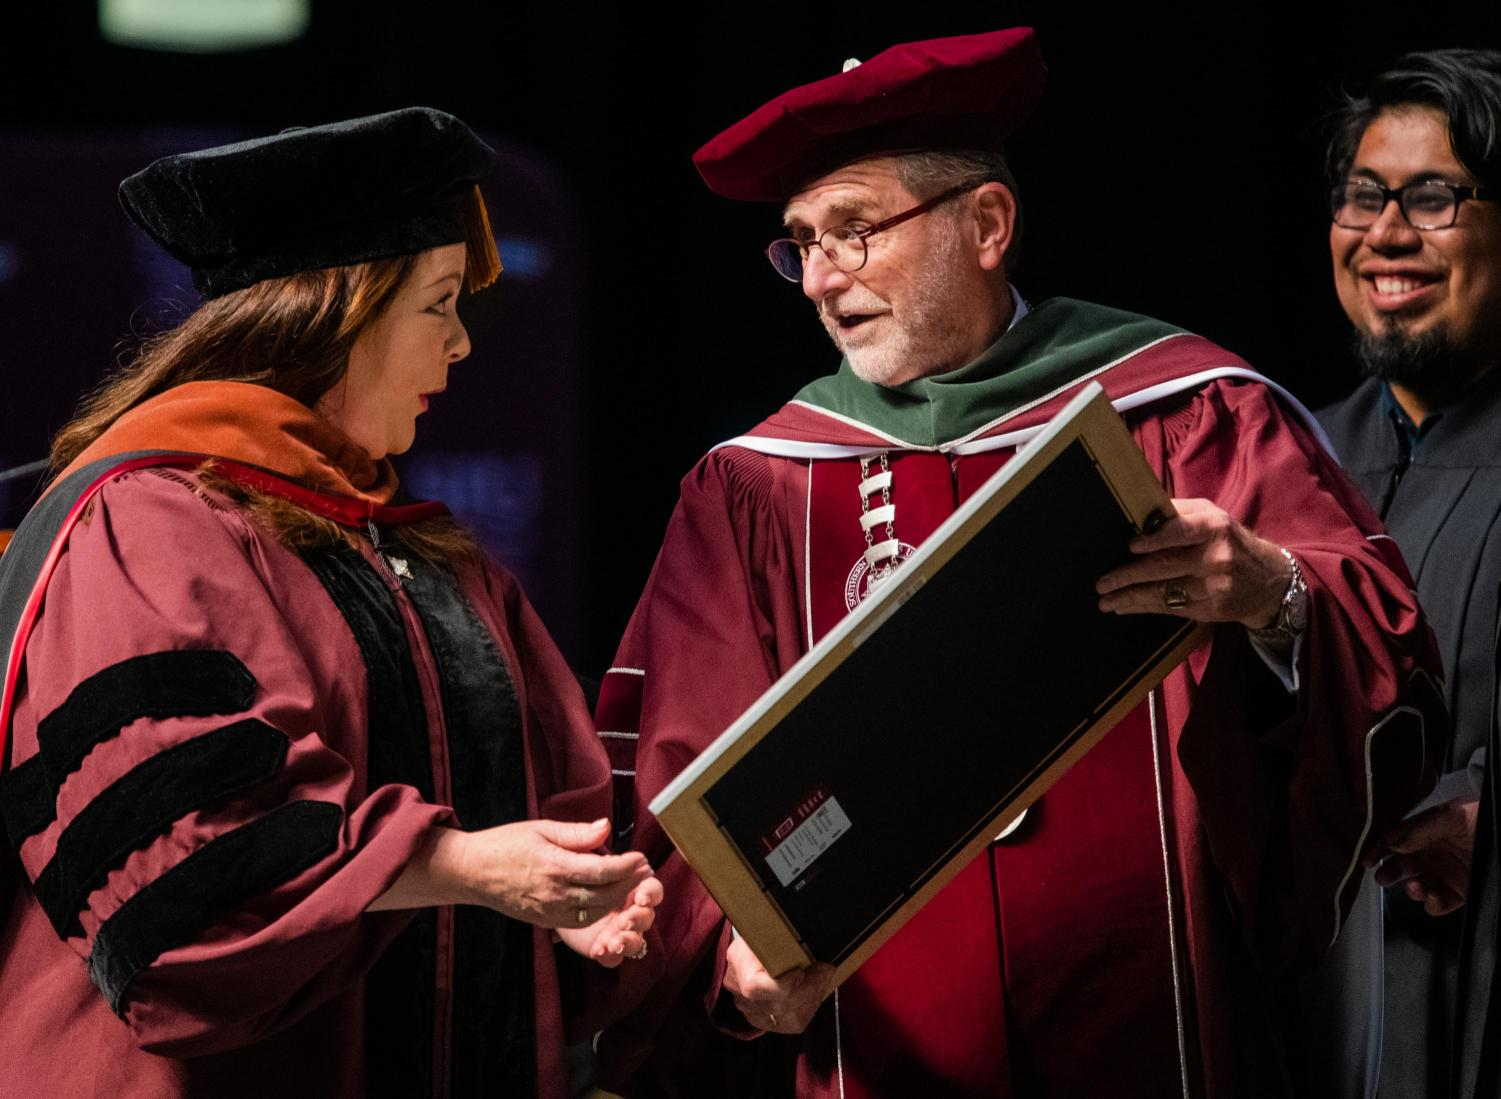 Academy+Award+nominee%2C+Emmy+Award-winning+actress+Melissa+McCarthy+receives+an+honorary+doctorate+of+performing+arts+degree+from+Interim+Chancellor+John+Dunn+on+Saturday%2C+May+11%2C+2019+during+the+2019+commencement+inside+the+SIU+Arena.+